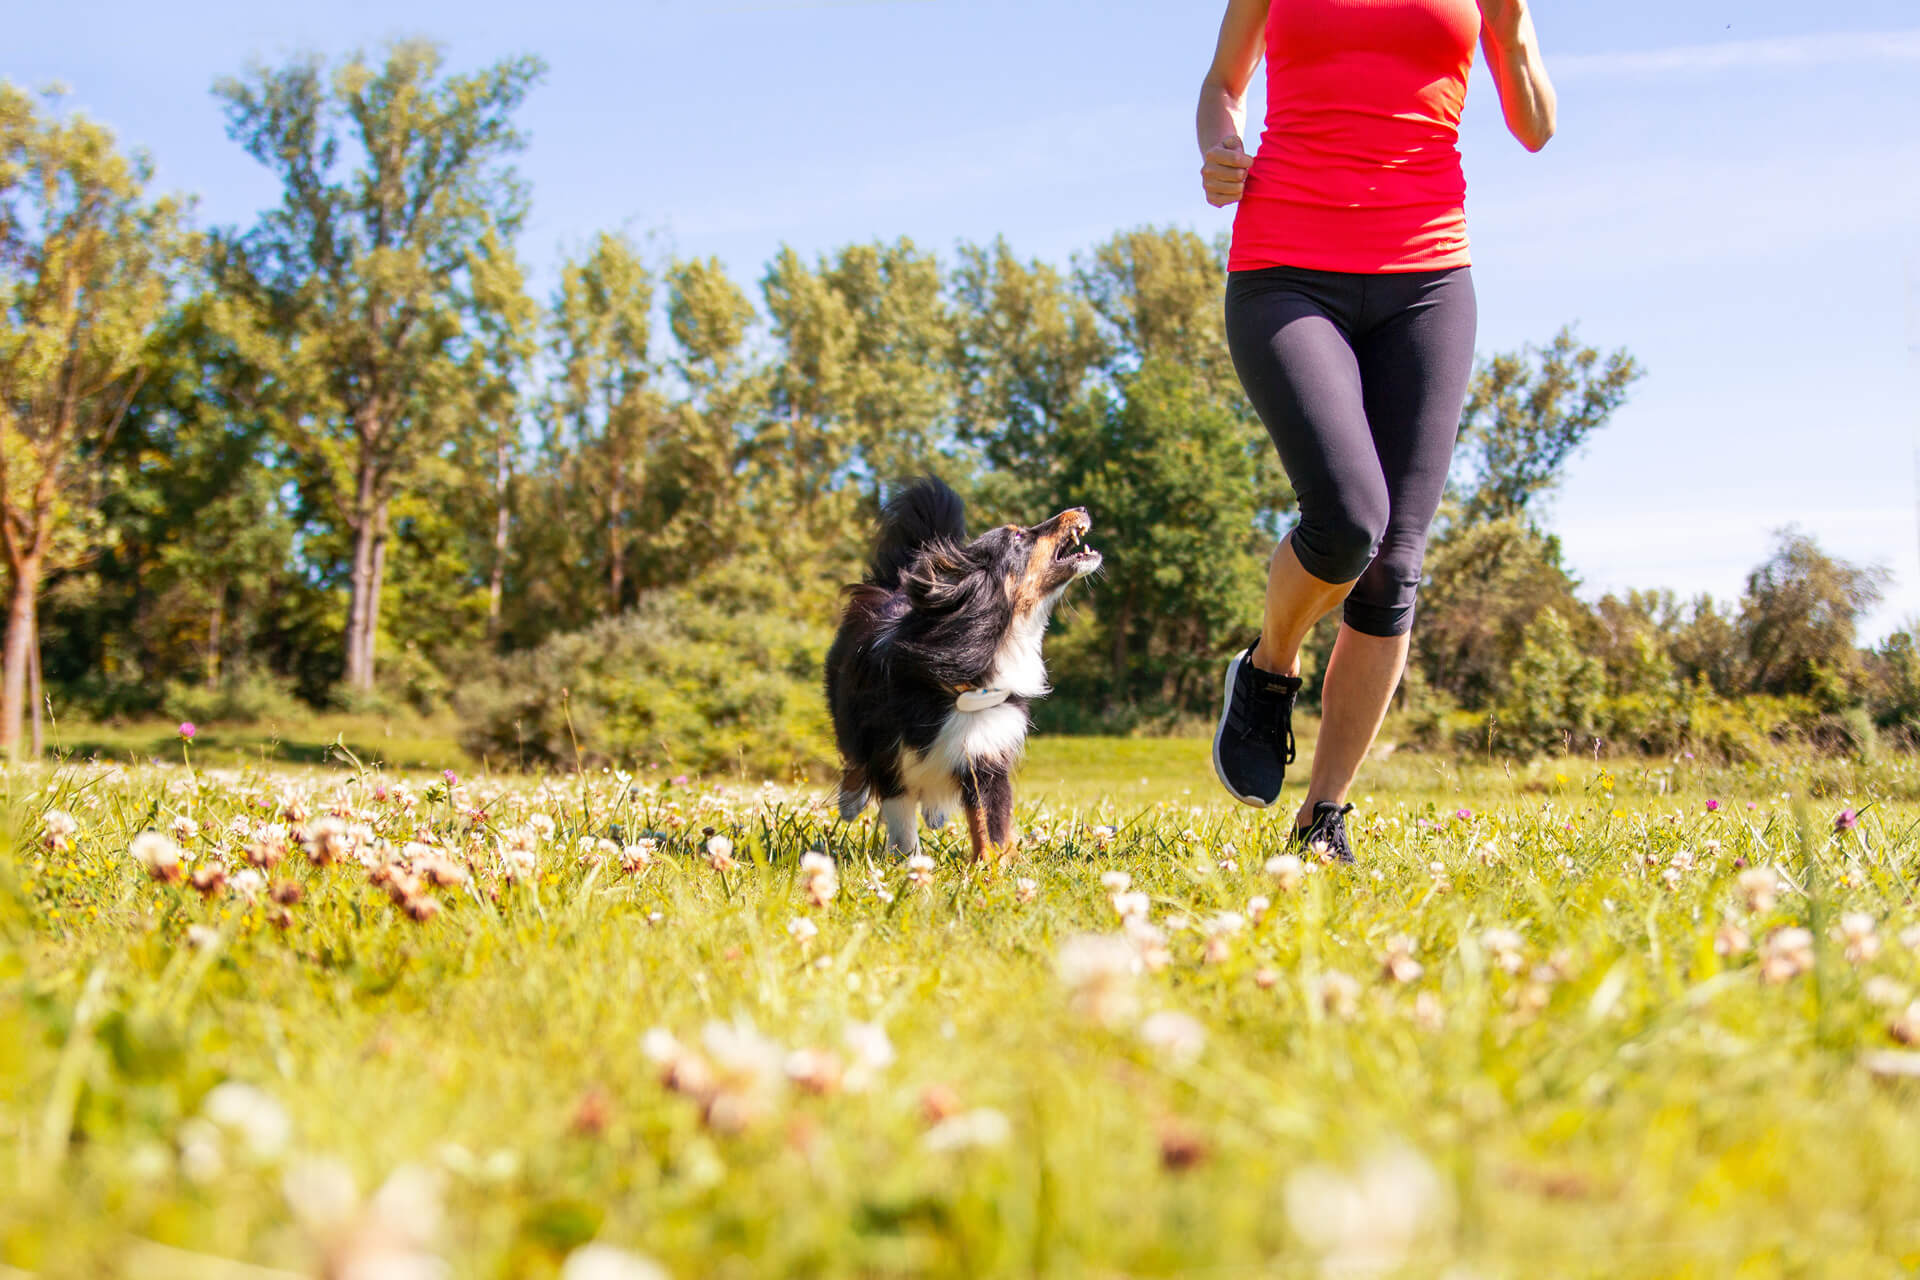 Woman running with a dog with GPS tracker in grass field outdoors